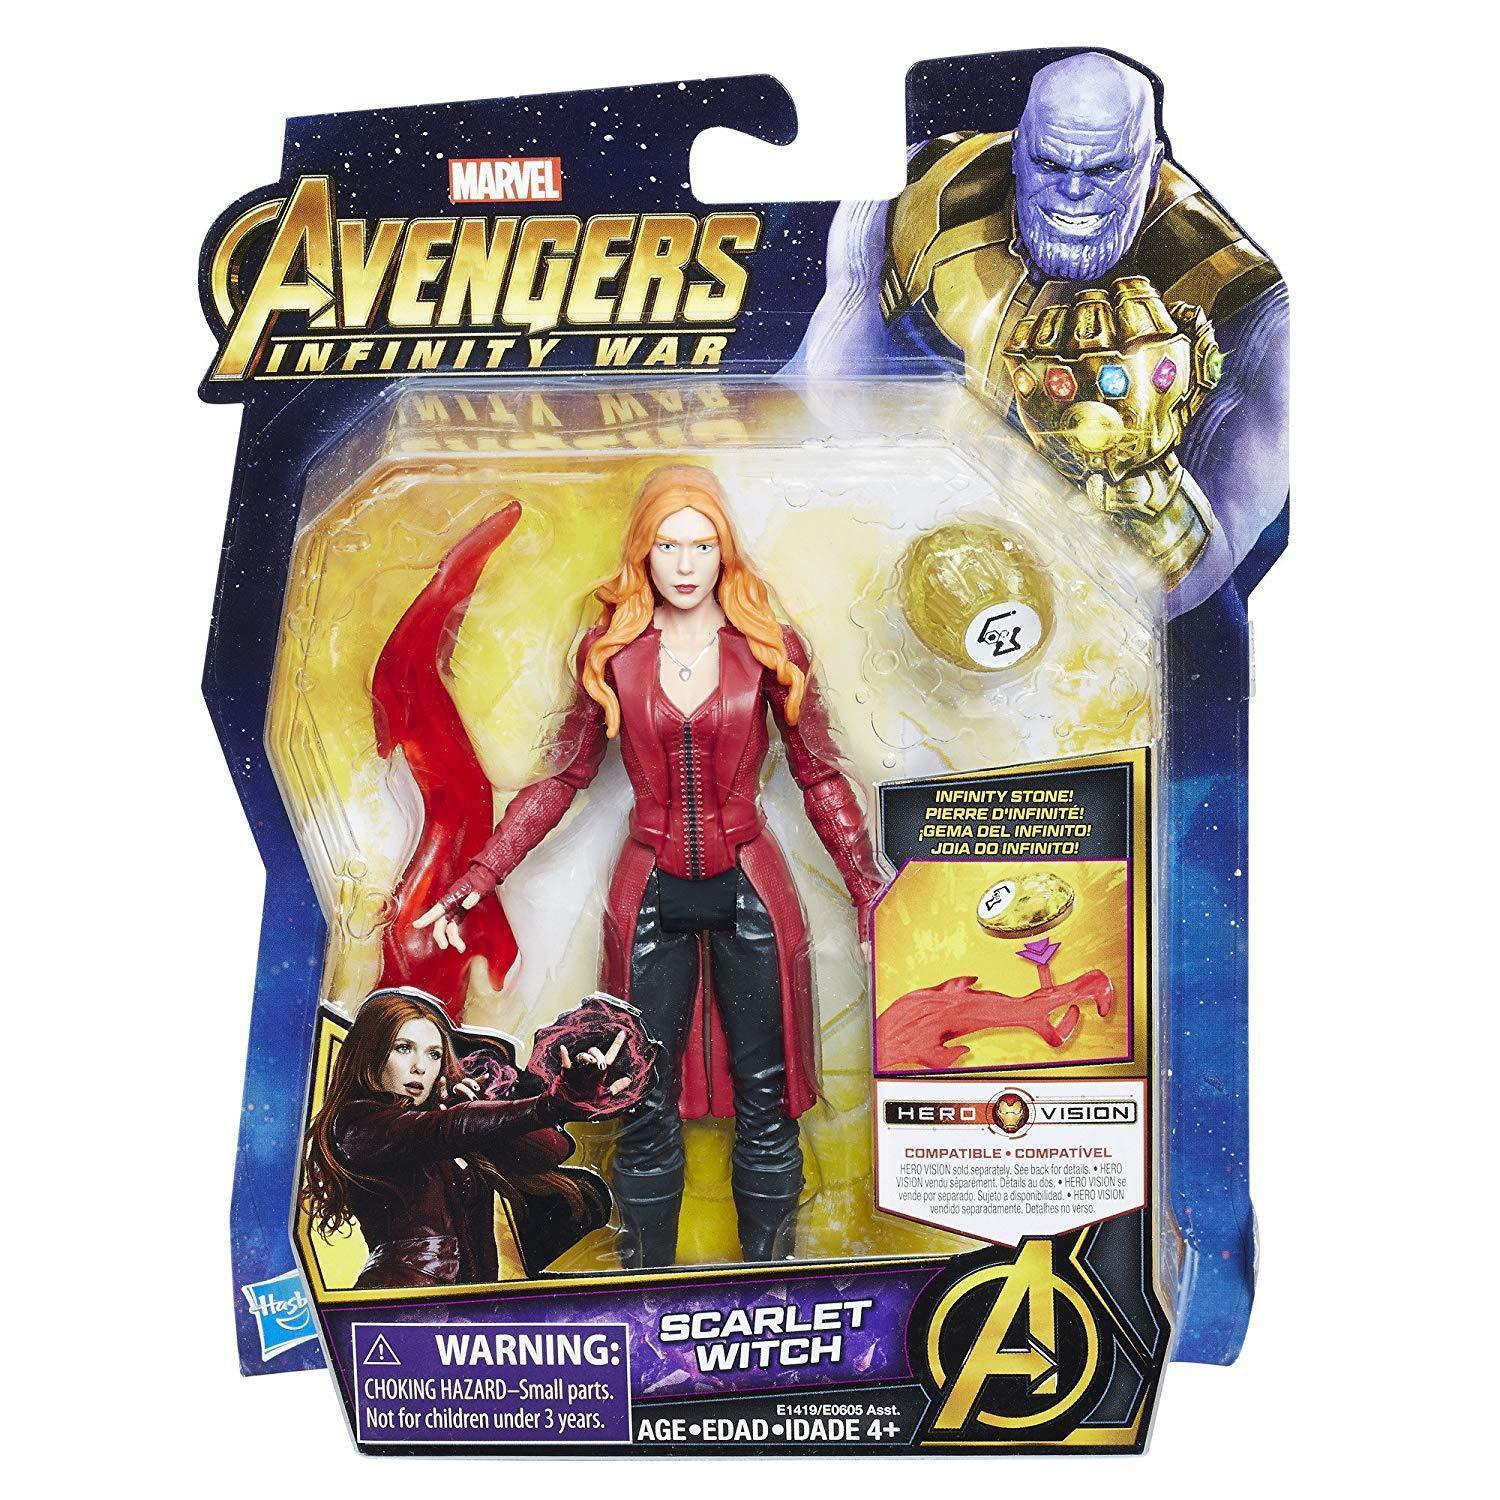 Marvel Avengers:hasbro Infinity War Scarlet Witch with Infinity Stone